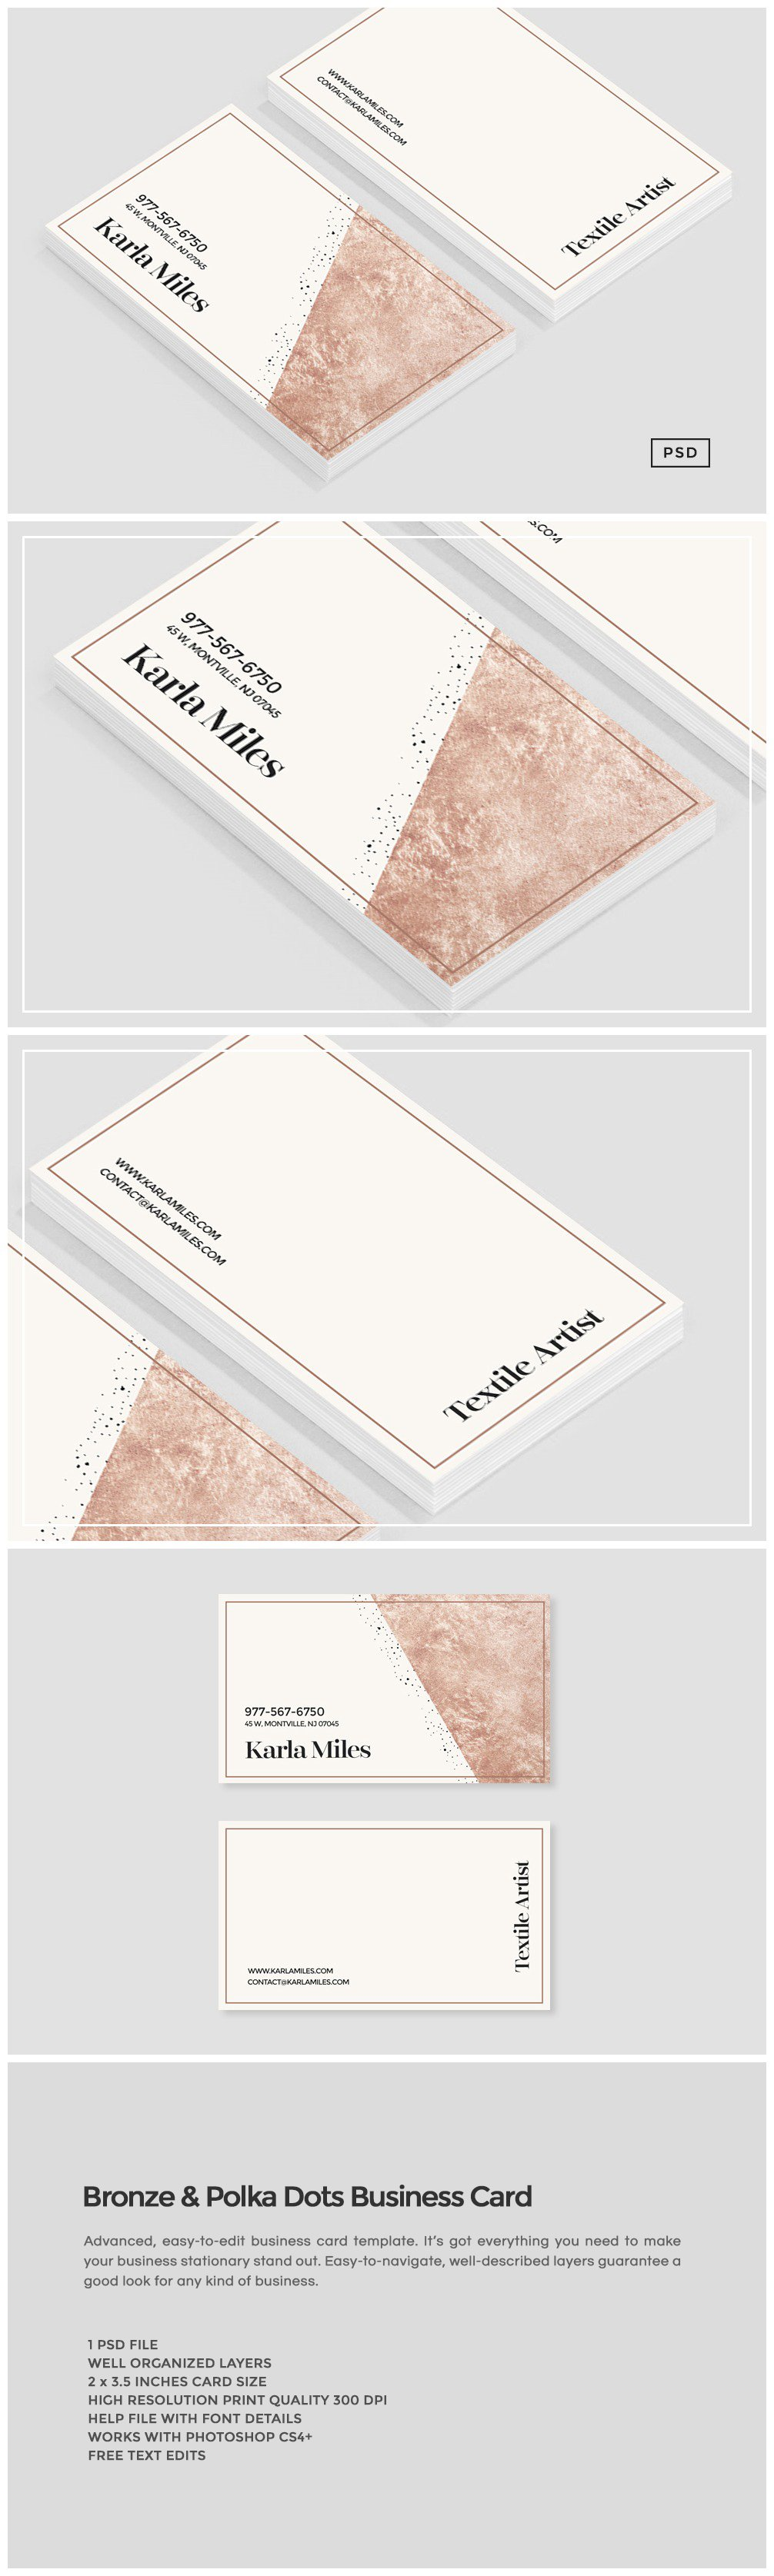 Bronze polka dots business card business card templates bronze polka dots business card business card templates creative market accmission Image collections